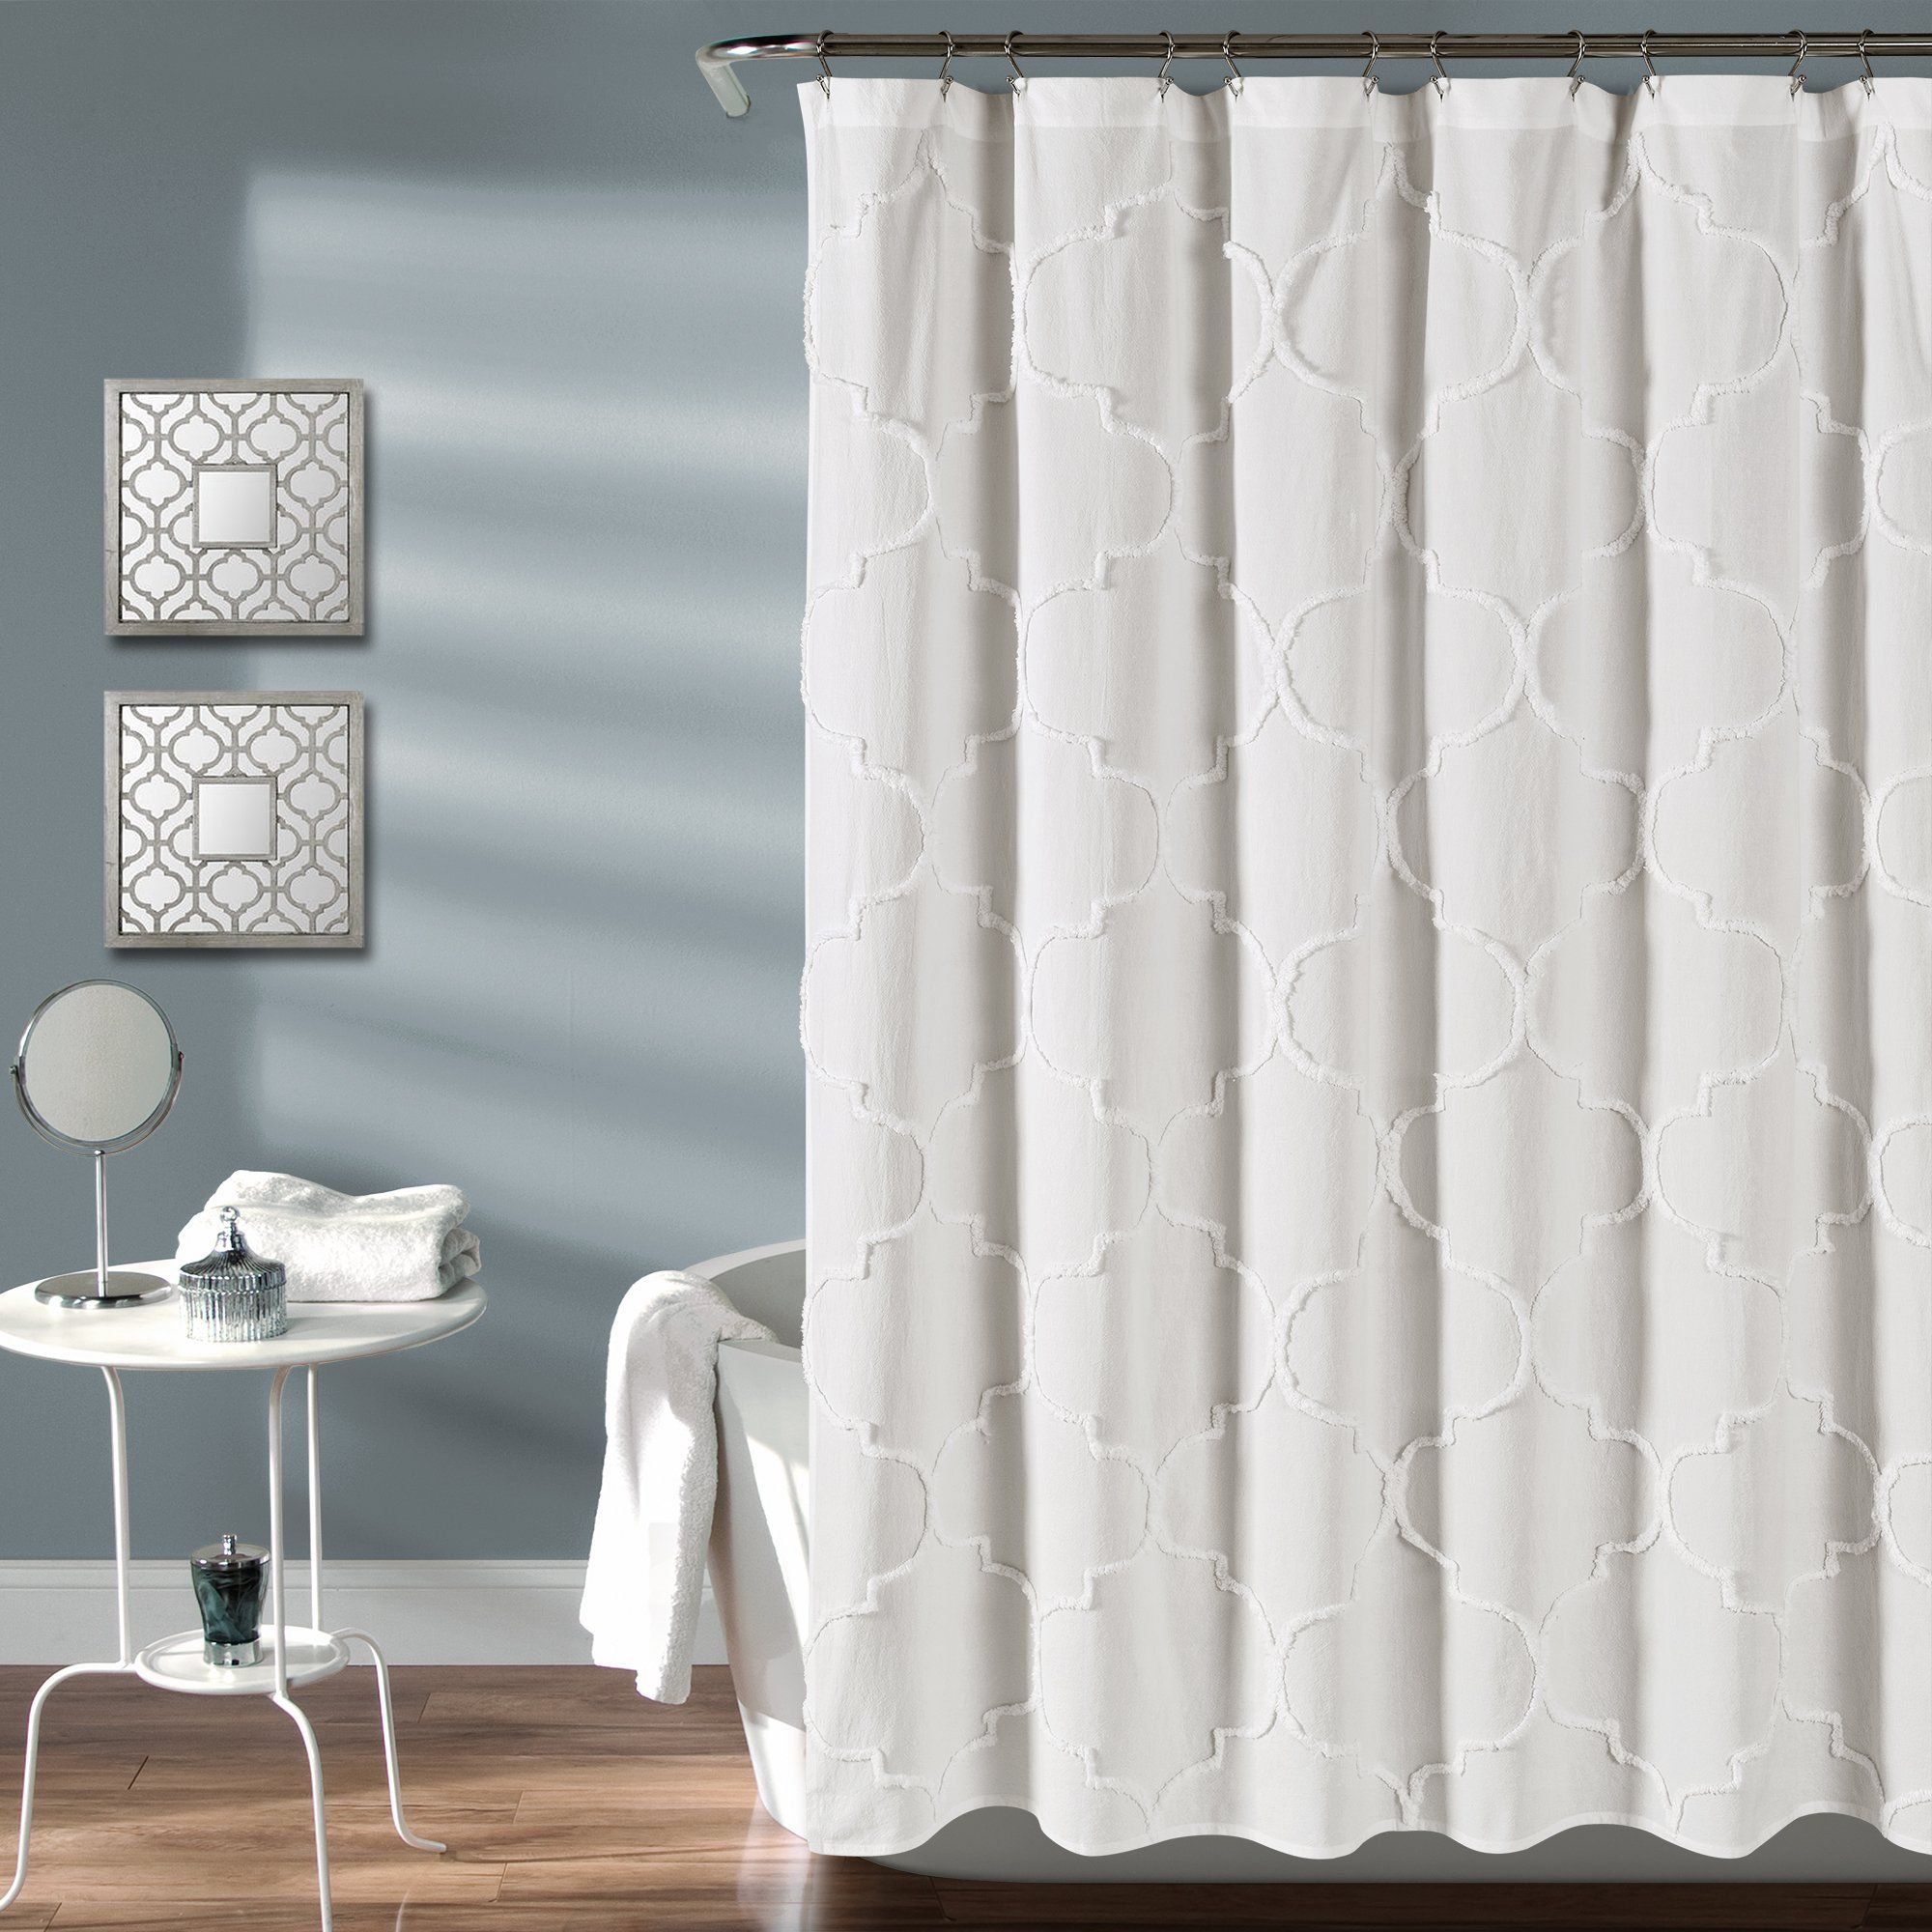 Luxurious Bold Metalic Moroccan Trellis Shower Curtain Set With 12